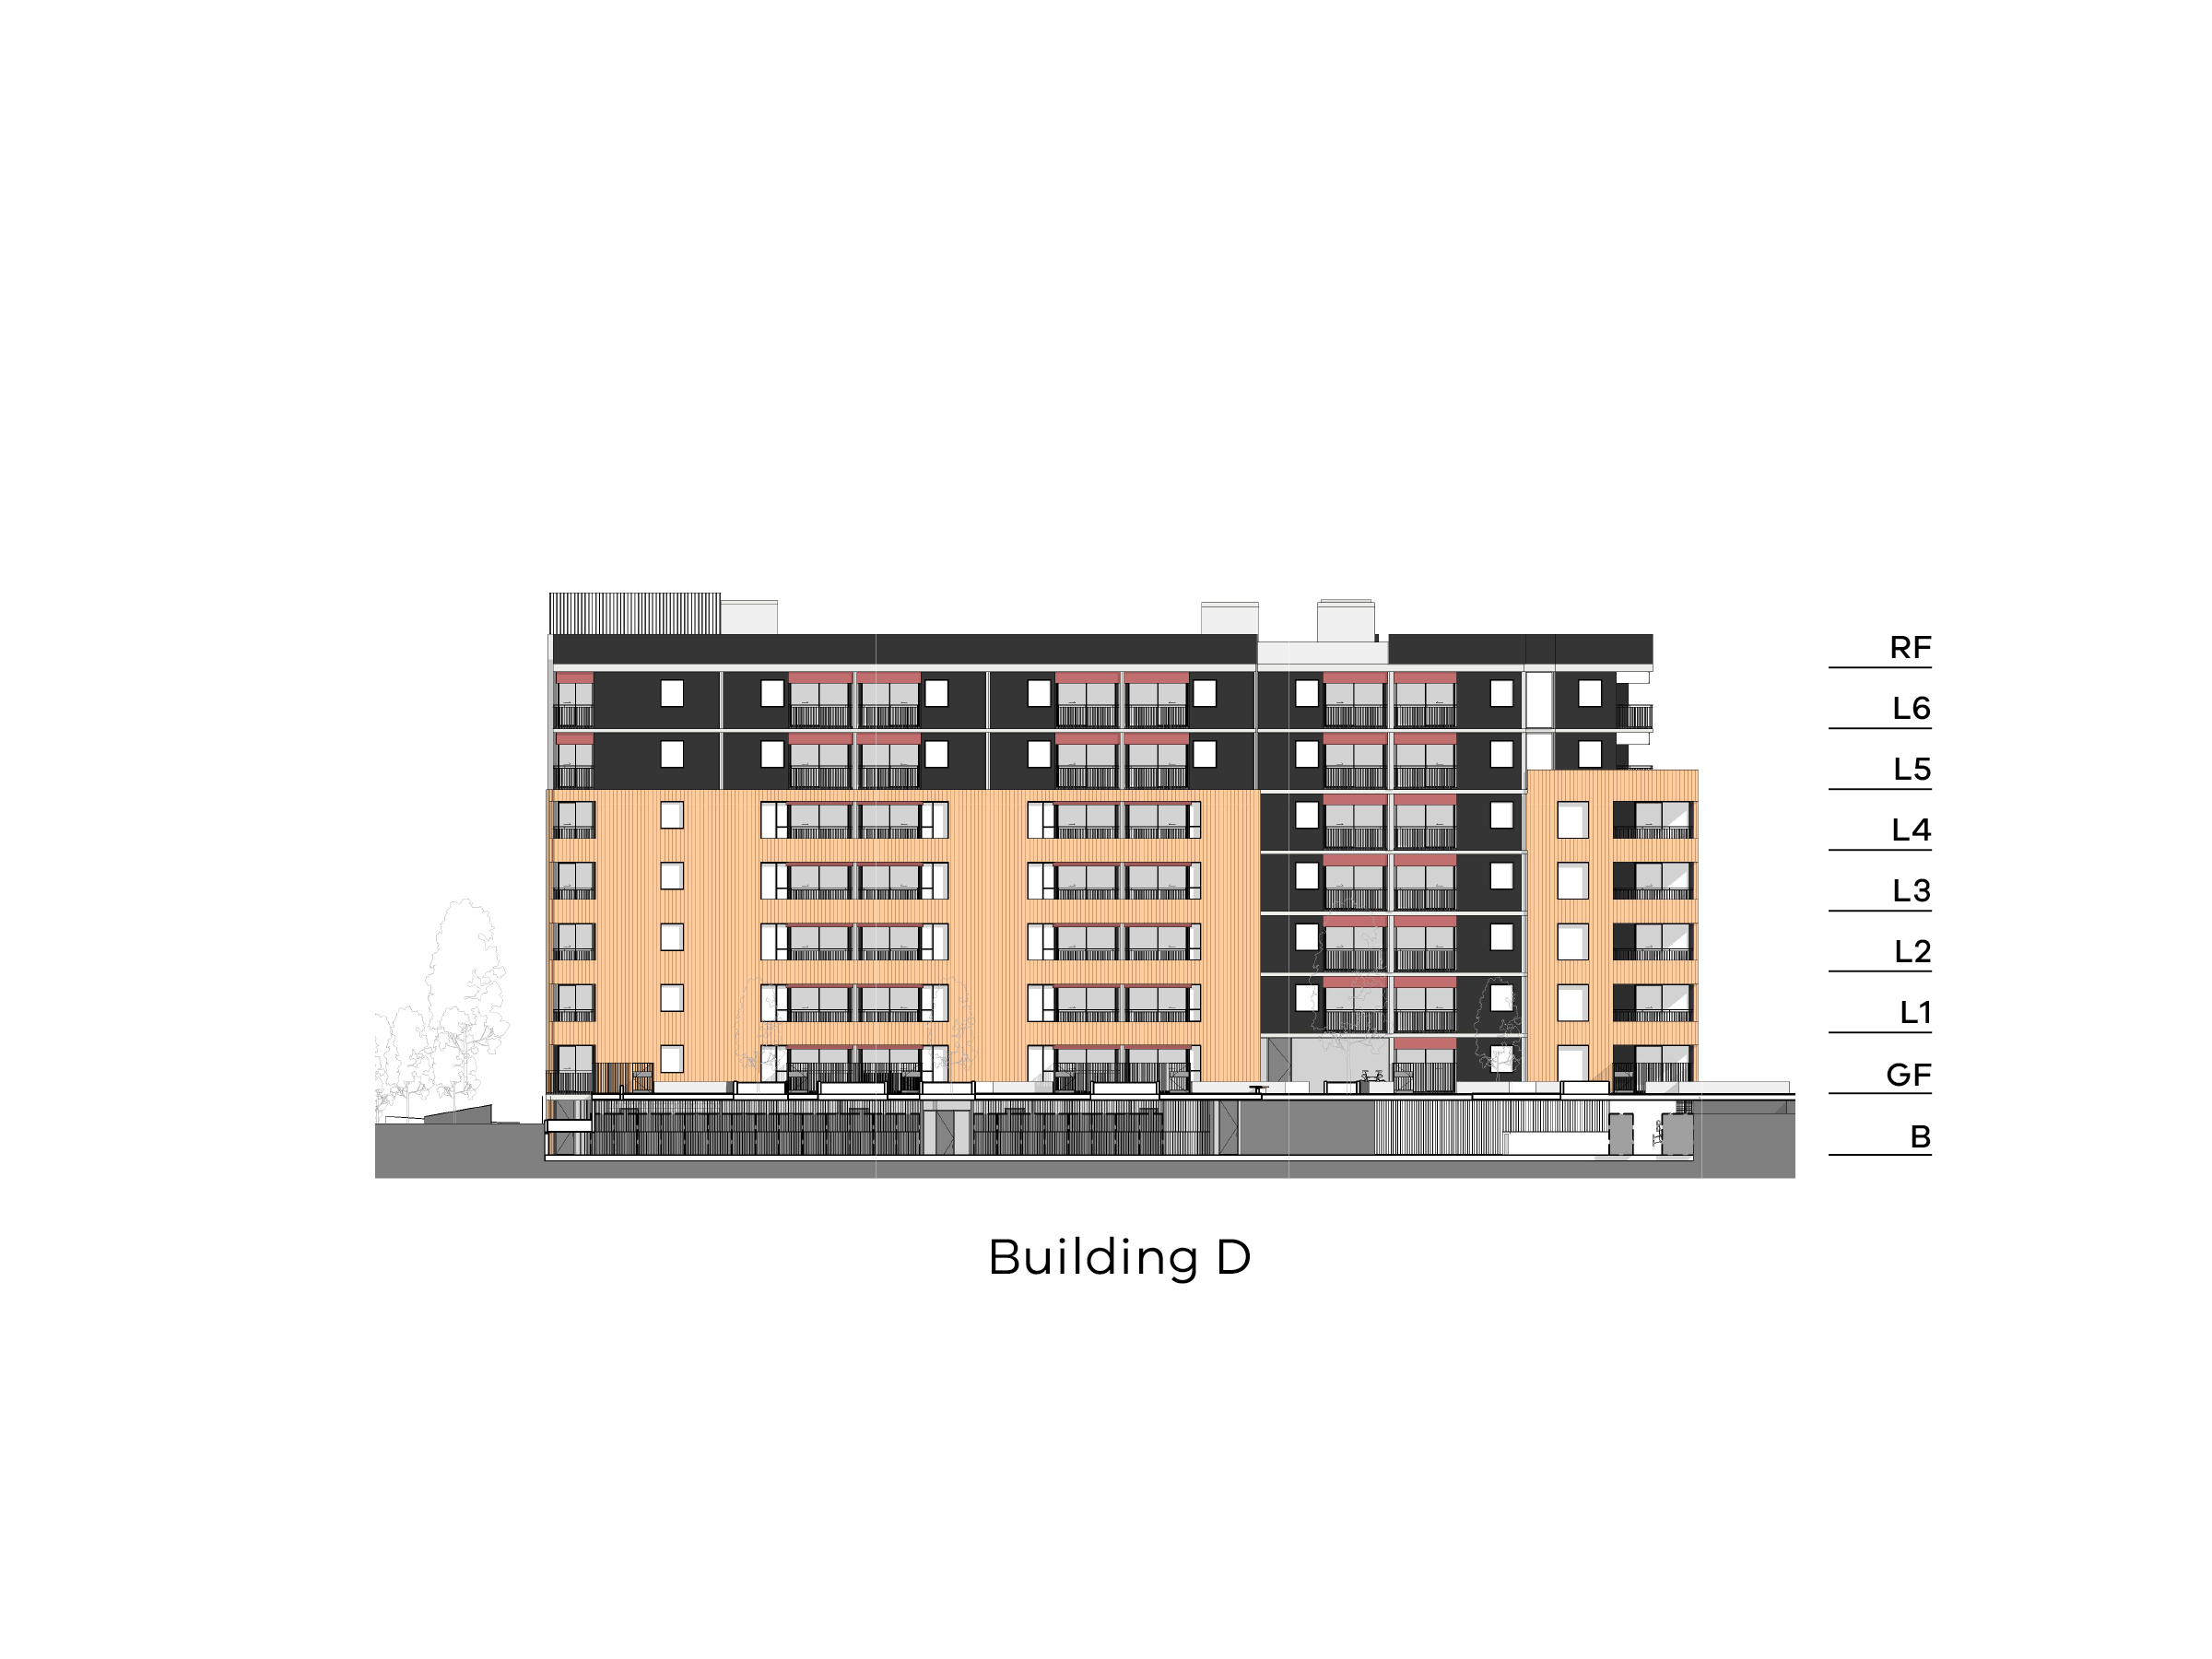 Diagram showing the height of building D as seen from the on-site walkway looking towards New Holland Crescent. Building D has a basement, ground floor, level 1-6 and a flat roof.